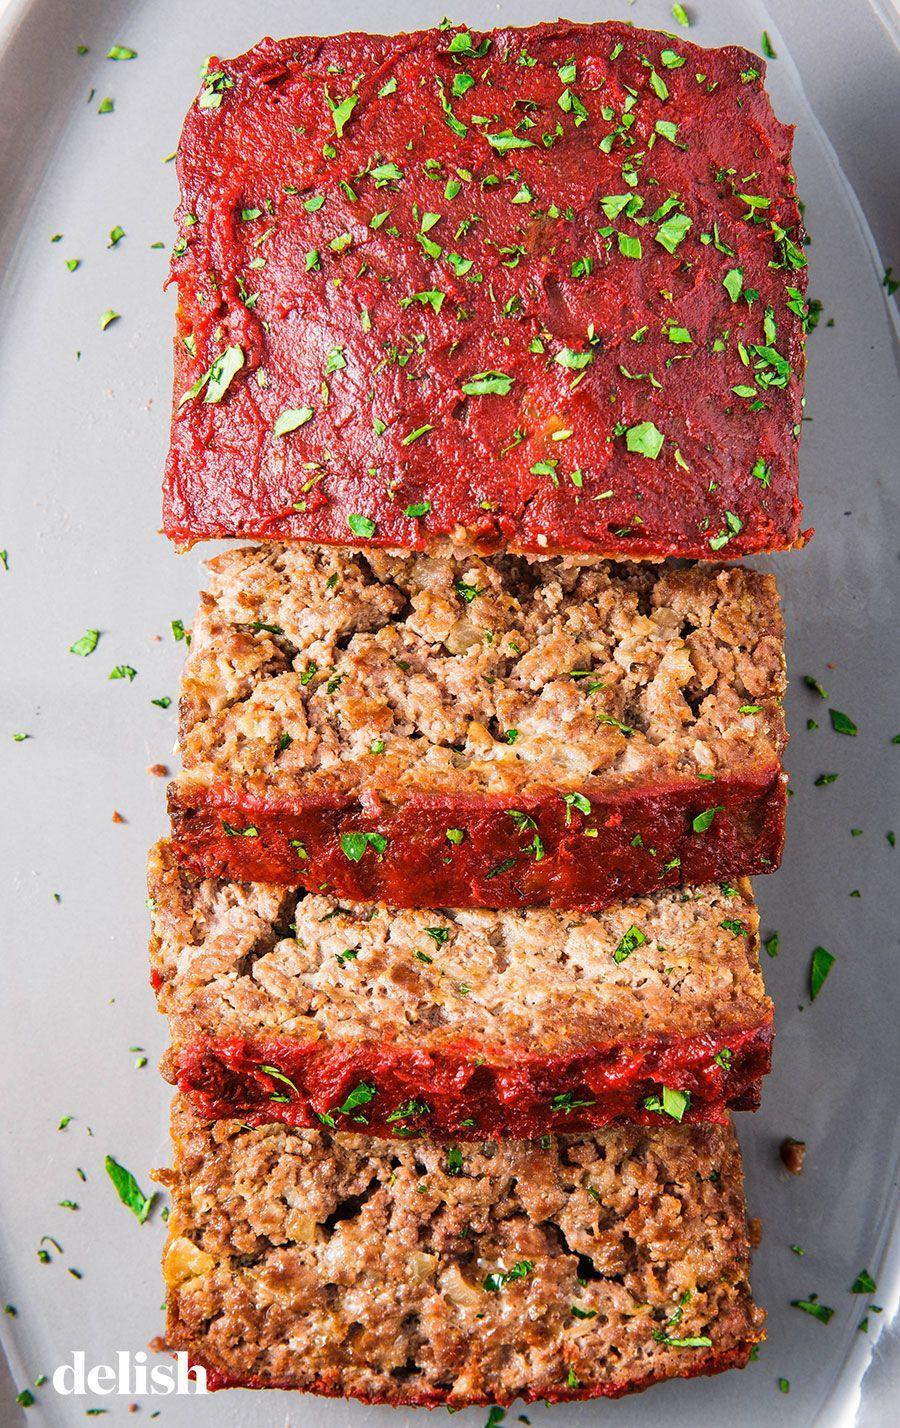 """<p>This healthy meatloaf will carry you through healthy January.</p><p>Get the recipe from <a href=""""https://www.delish.com/cooking/recipe-ideas/a25363131/paleo-meatloaf-recipe/"""" rel=""""nofollow noopener"""" target=""""_blank"""" data-ylk=""""slk:Delish"""" class=""""link rapid-noclick-resp"""">Delish</a>.</p><p><strong><a class=""""link rapid-noclick-resp"""" href=""""https://go.redirectingat.com?id=74968X1596630&url=https%3A%2F%2Fwww.barnesandnoble.com%2Fw%2Fdelish-editors-of-delish%2F1127659306%3Fst%3DAFF%26SID%3DBarnes%2B%2526%2BNoble%2B-%2BTop%2B100%253A%2BBook%2BBestsellers%262sid%3DSkimlinks_7689440_NA&sref=https%3A%2F%2Fwww.delish.com%2Fcooking%2Frecipe-ideas%2Fg3156%2Fwinter-dinners%2F"""" rel=""""nofollow noopener"""" target=""""_blank"""" data-ylk=""""slk:GET YOURS NOW"""">GET YOURS NOW</a> <em>Delish Cookbook, barnesandnoble.com</em></strong> </p>"""